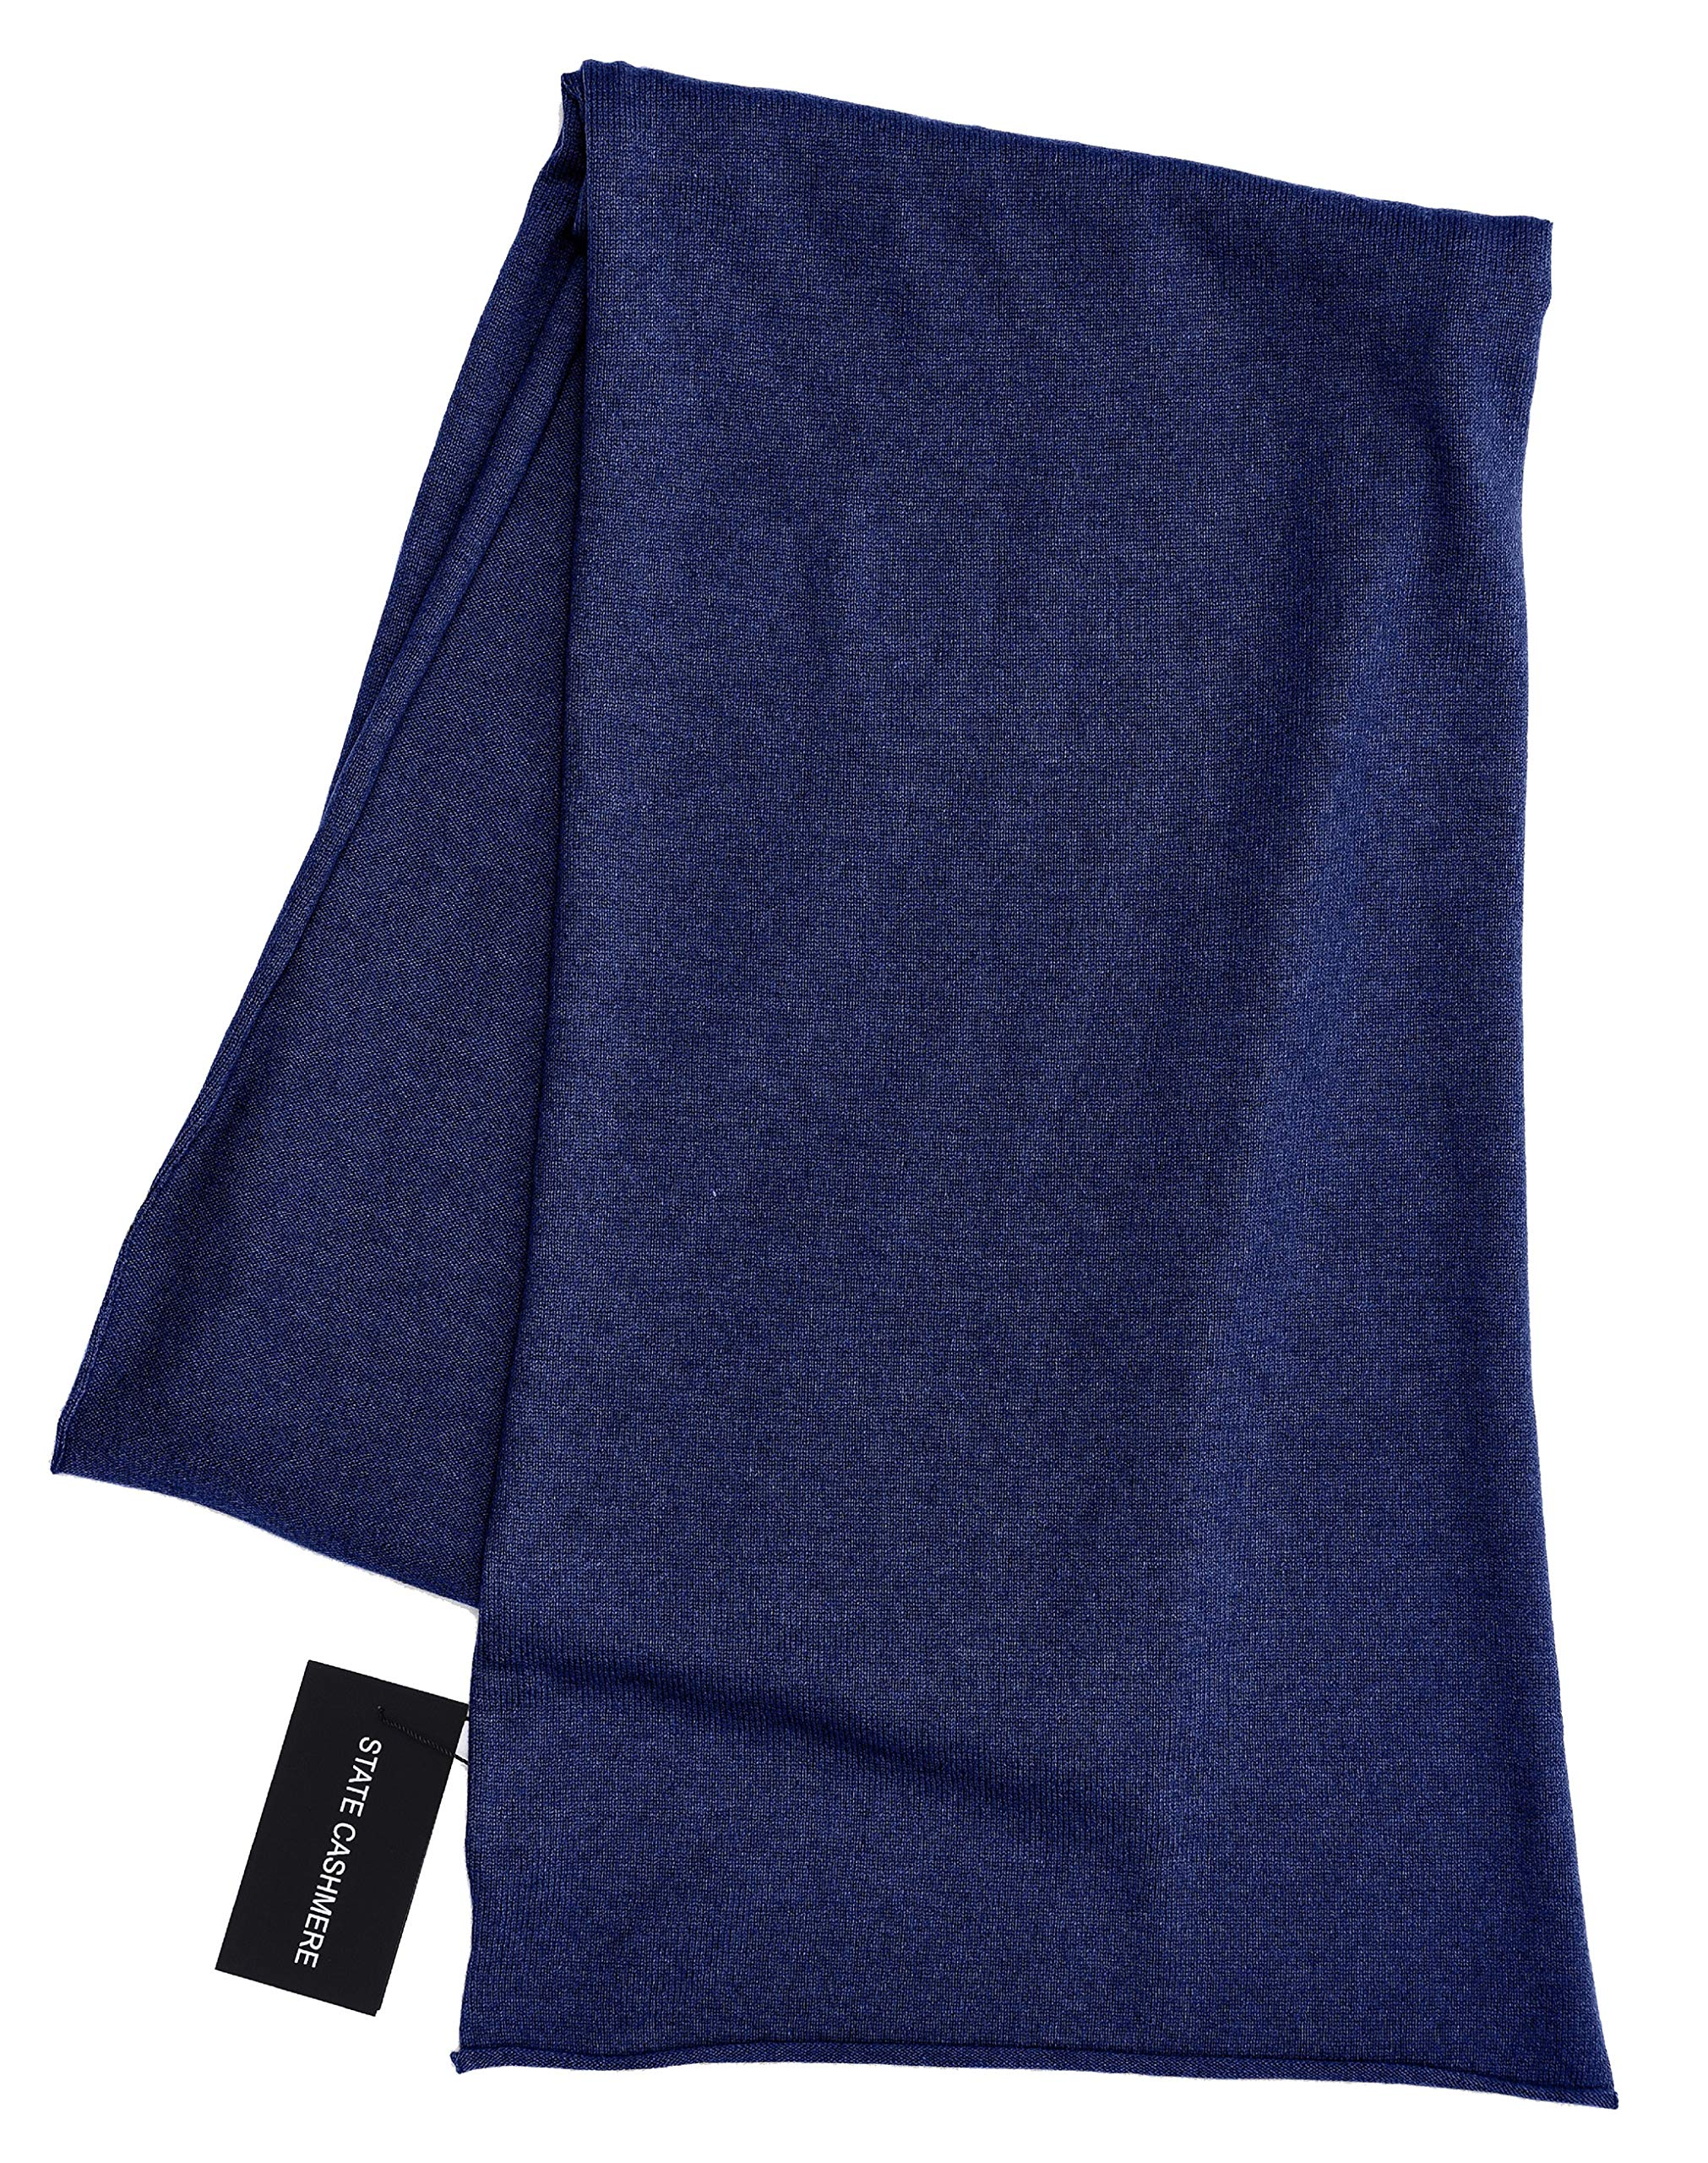 State Cashmere 100% Pure Cashmere Solid Color Scarf Wrap, Ultimate Soft and Cozy 80''x13.5''